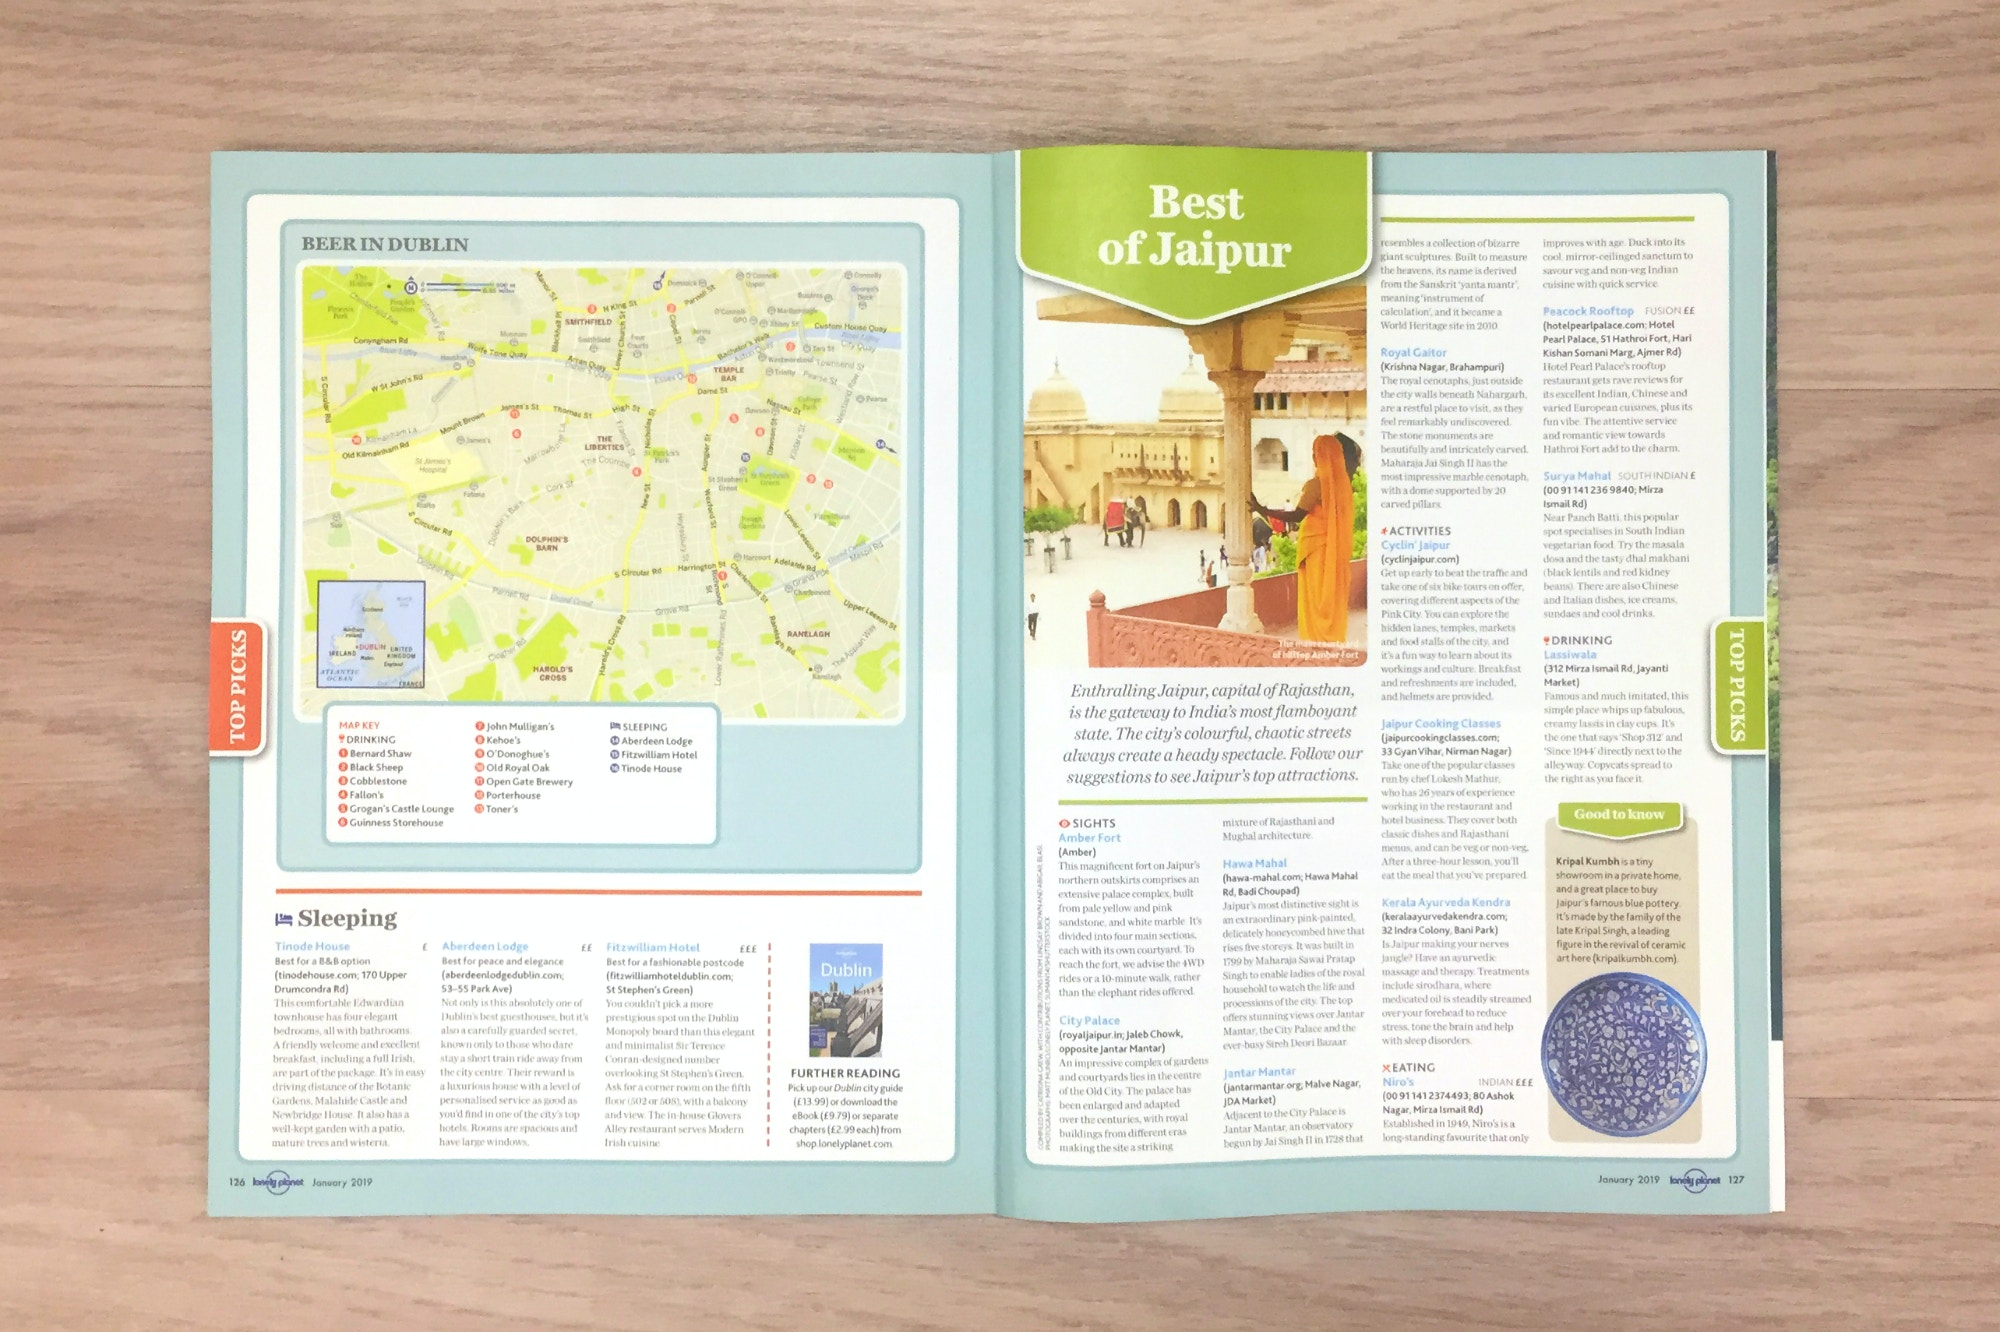 Free mini-guides - Jaipur spread in Lonely Planet Magazine